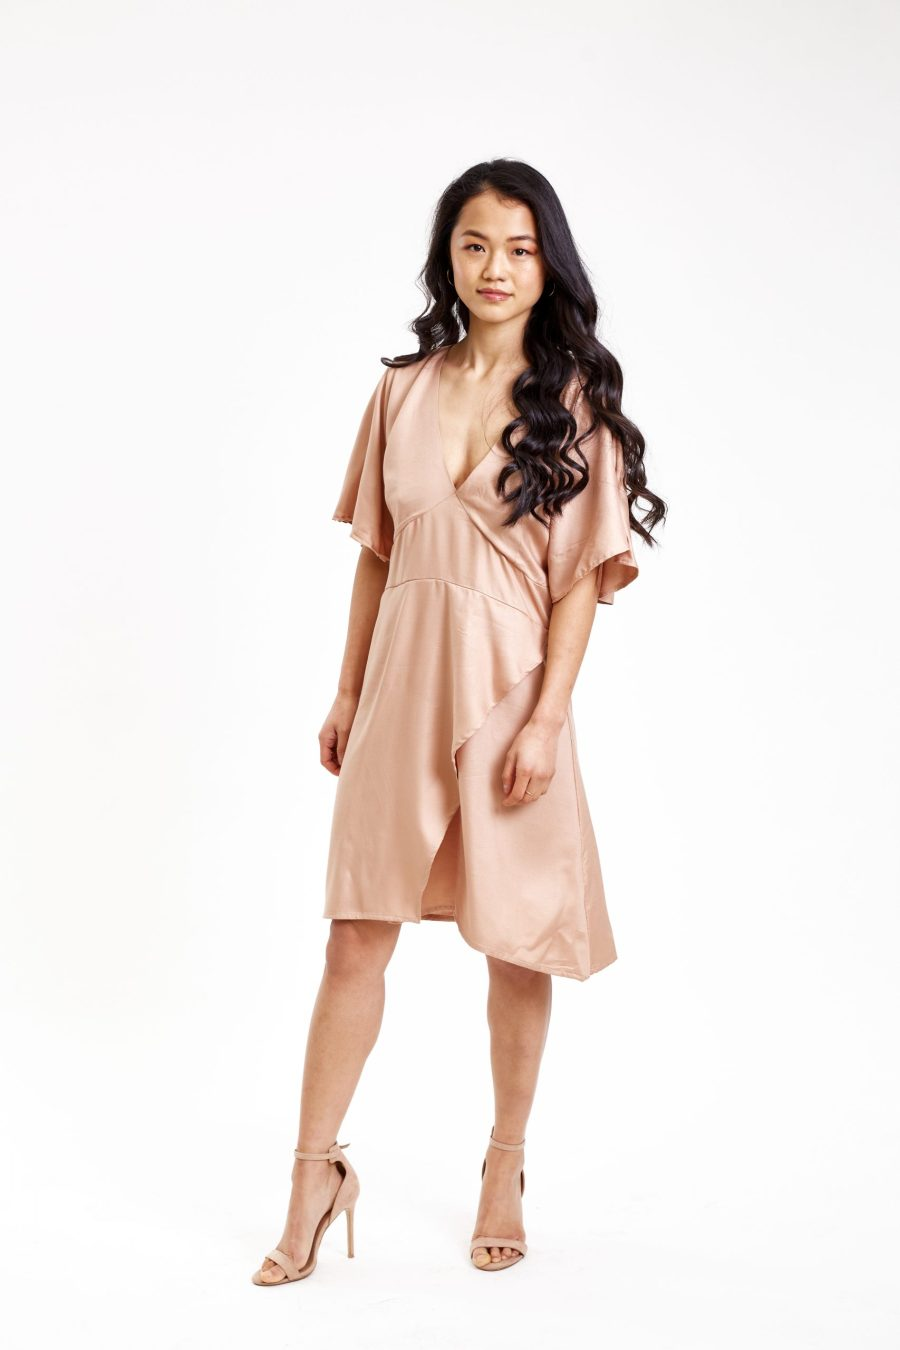 Butterfly maple dress outfit front